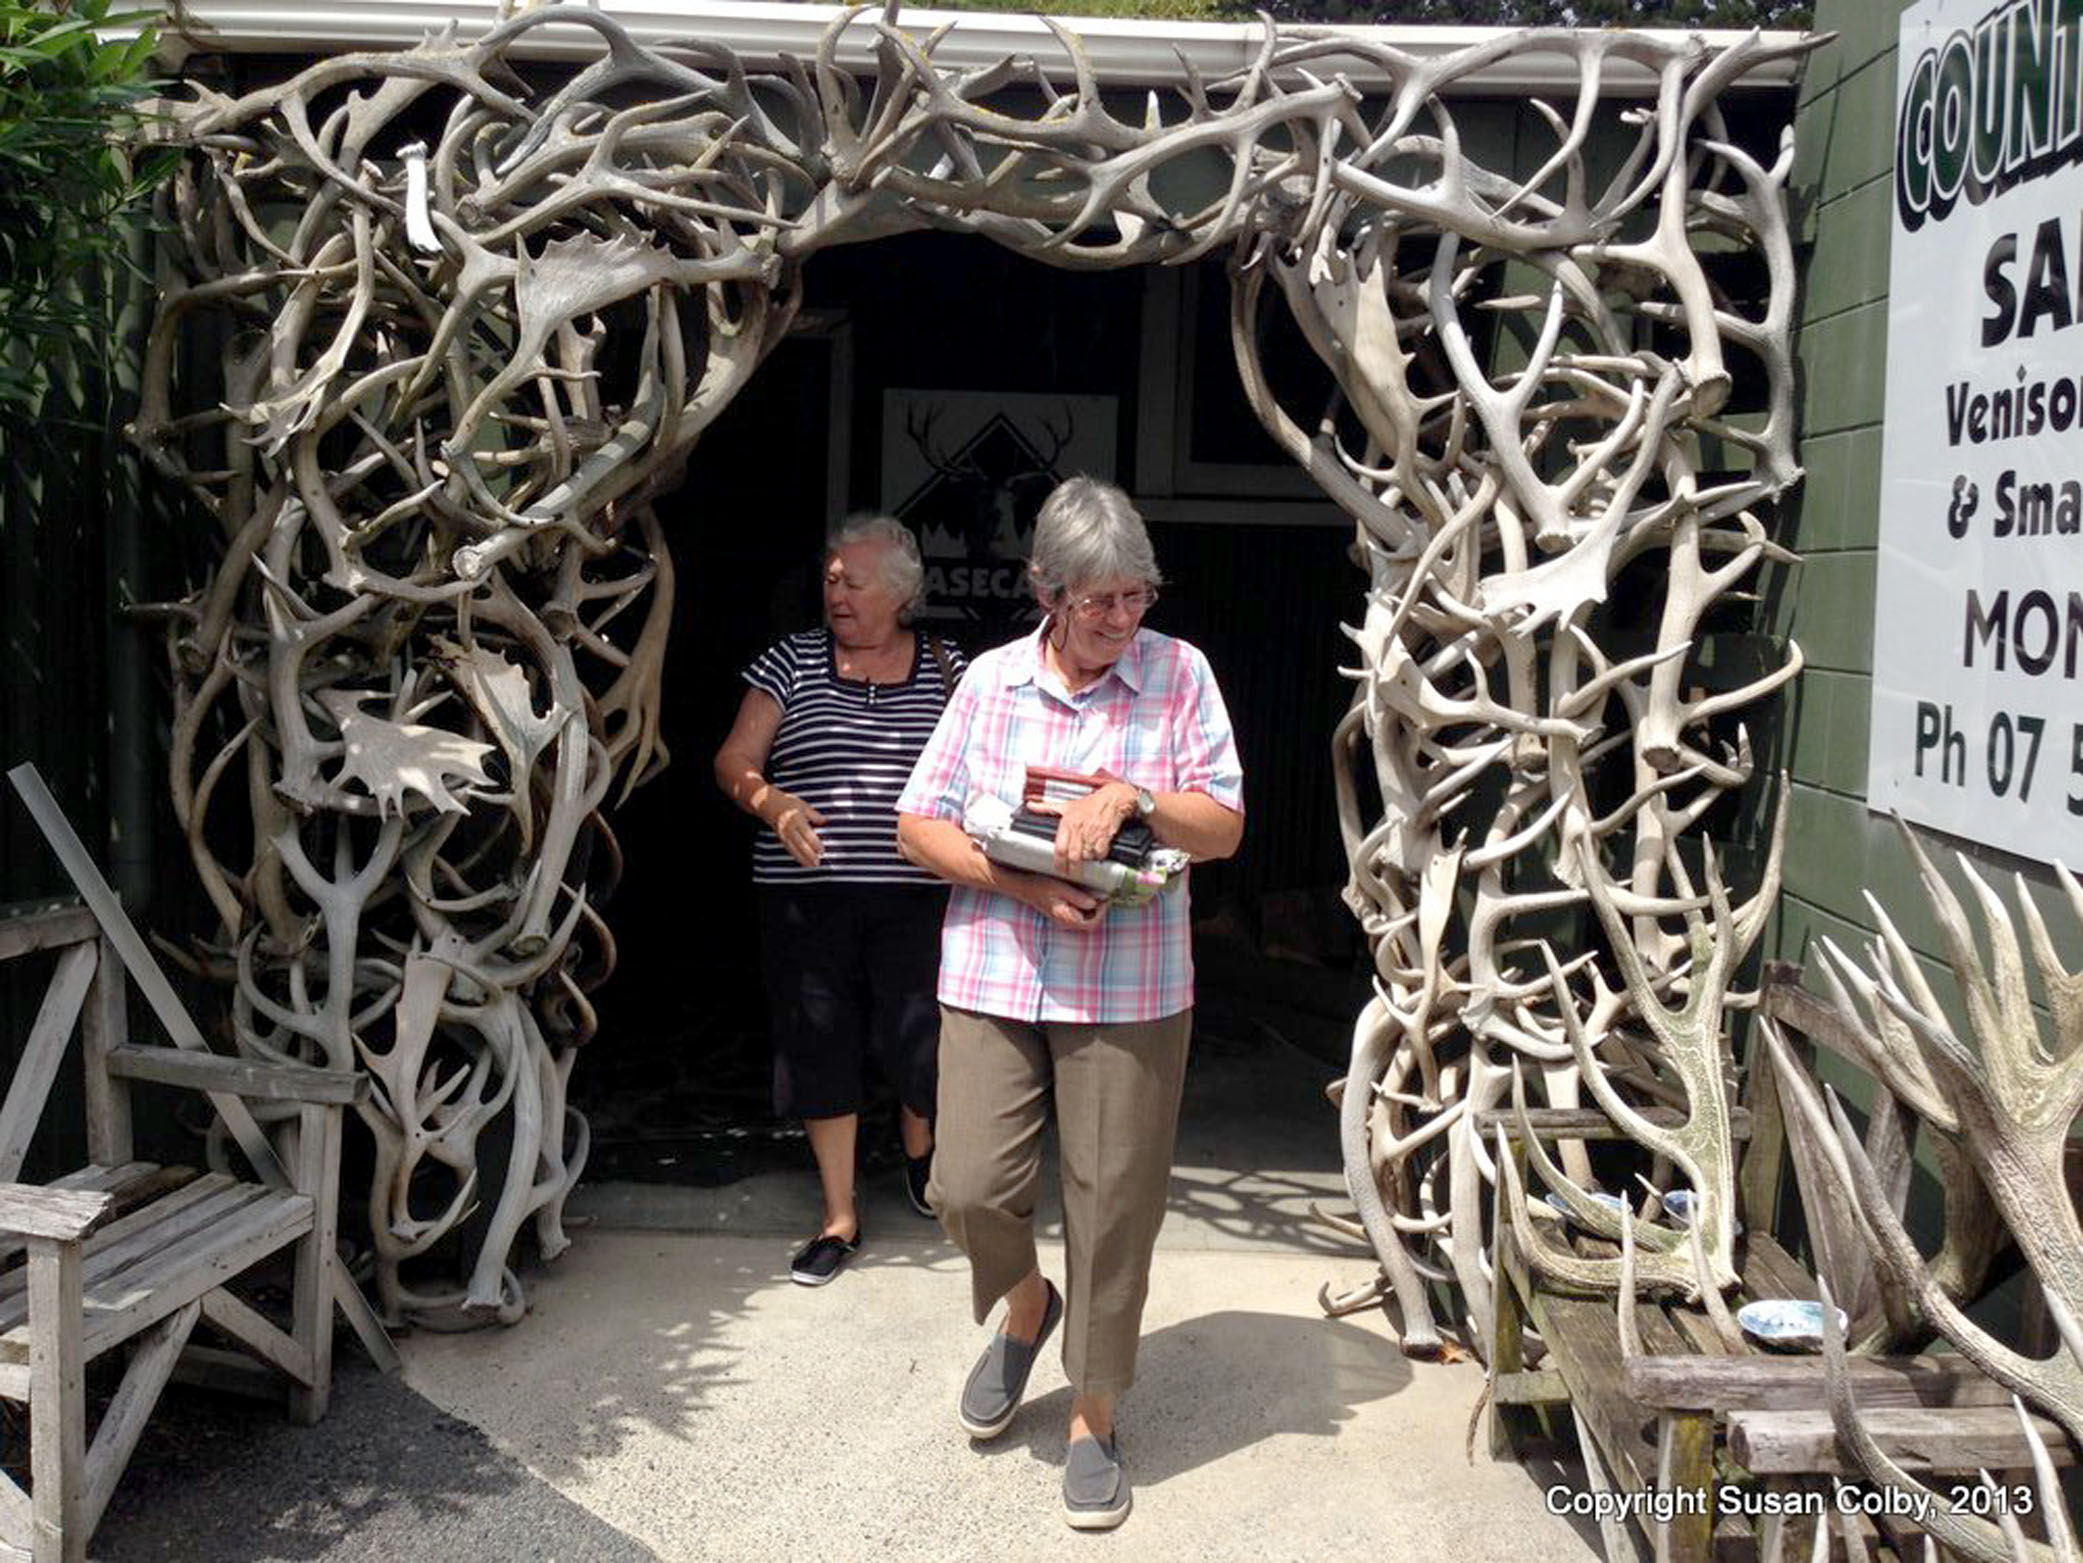 Zoze and Evelyn coming out through the antler arch doorway of Basecamp